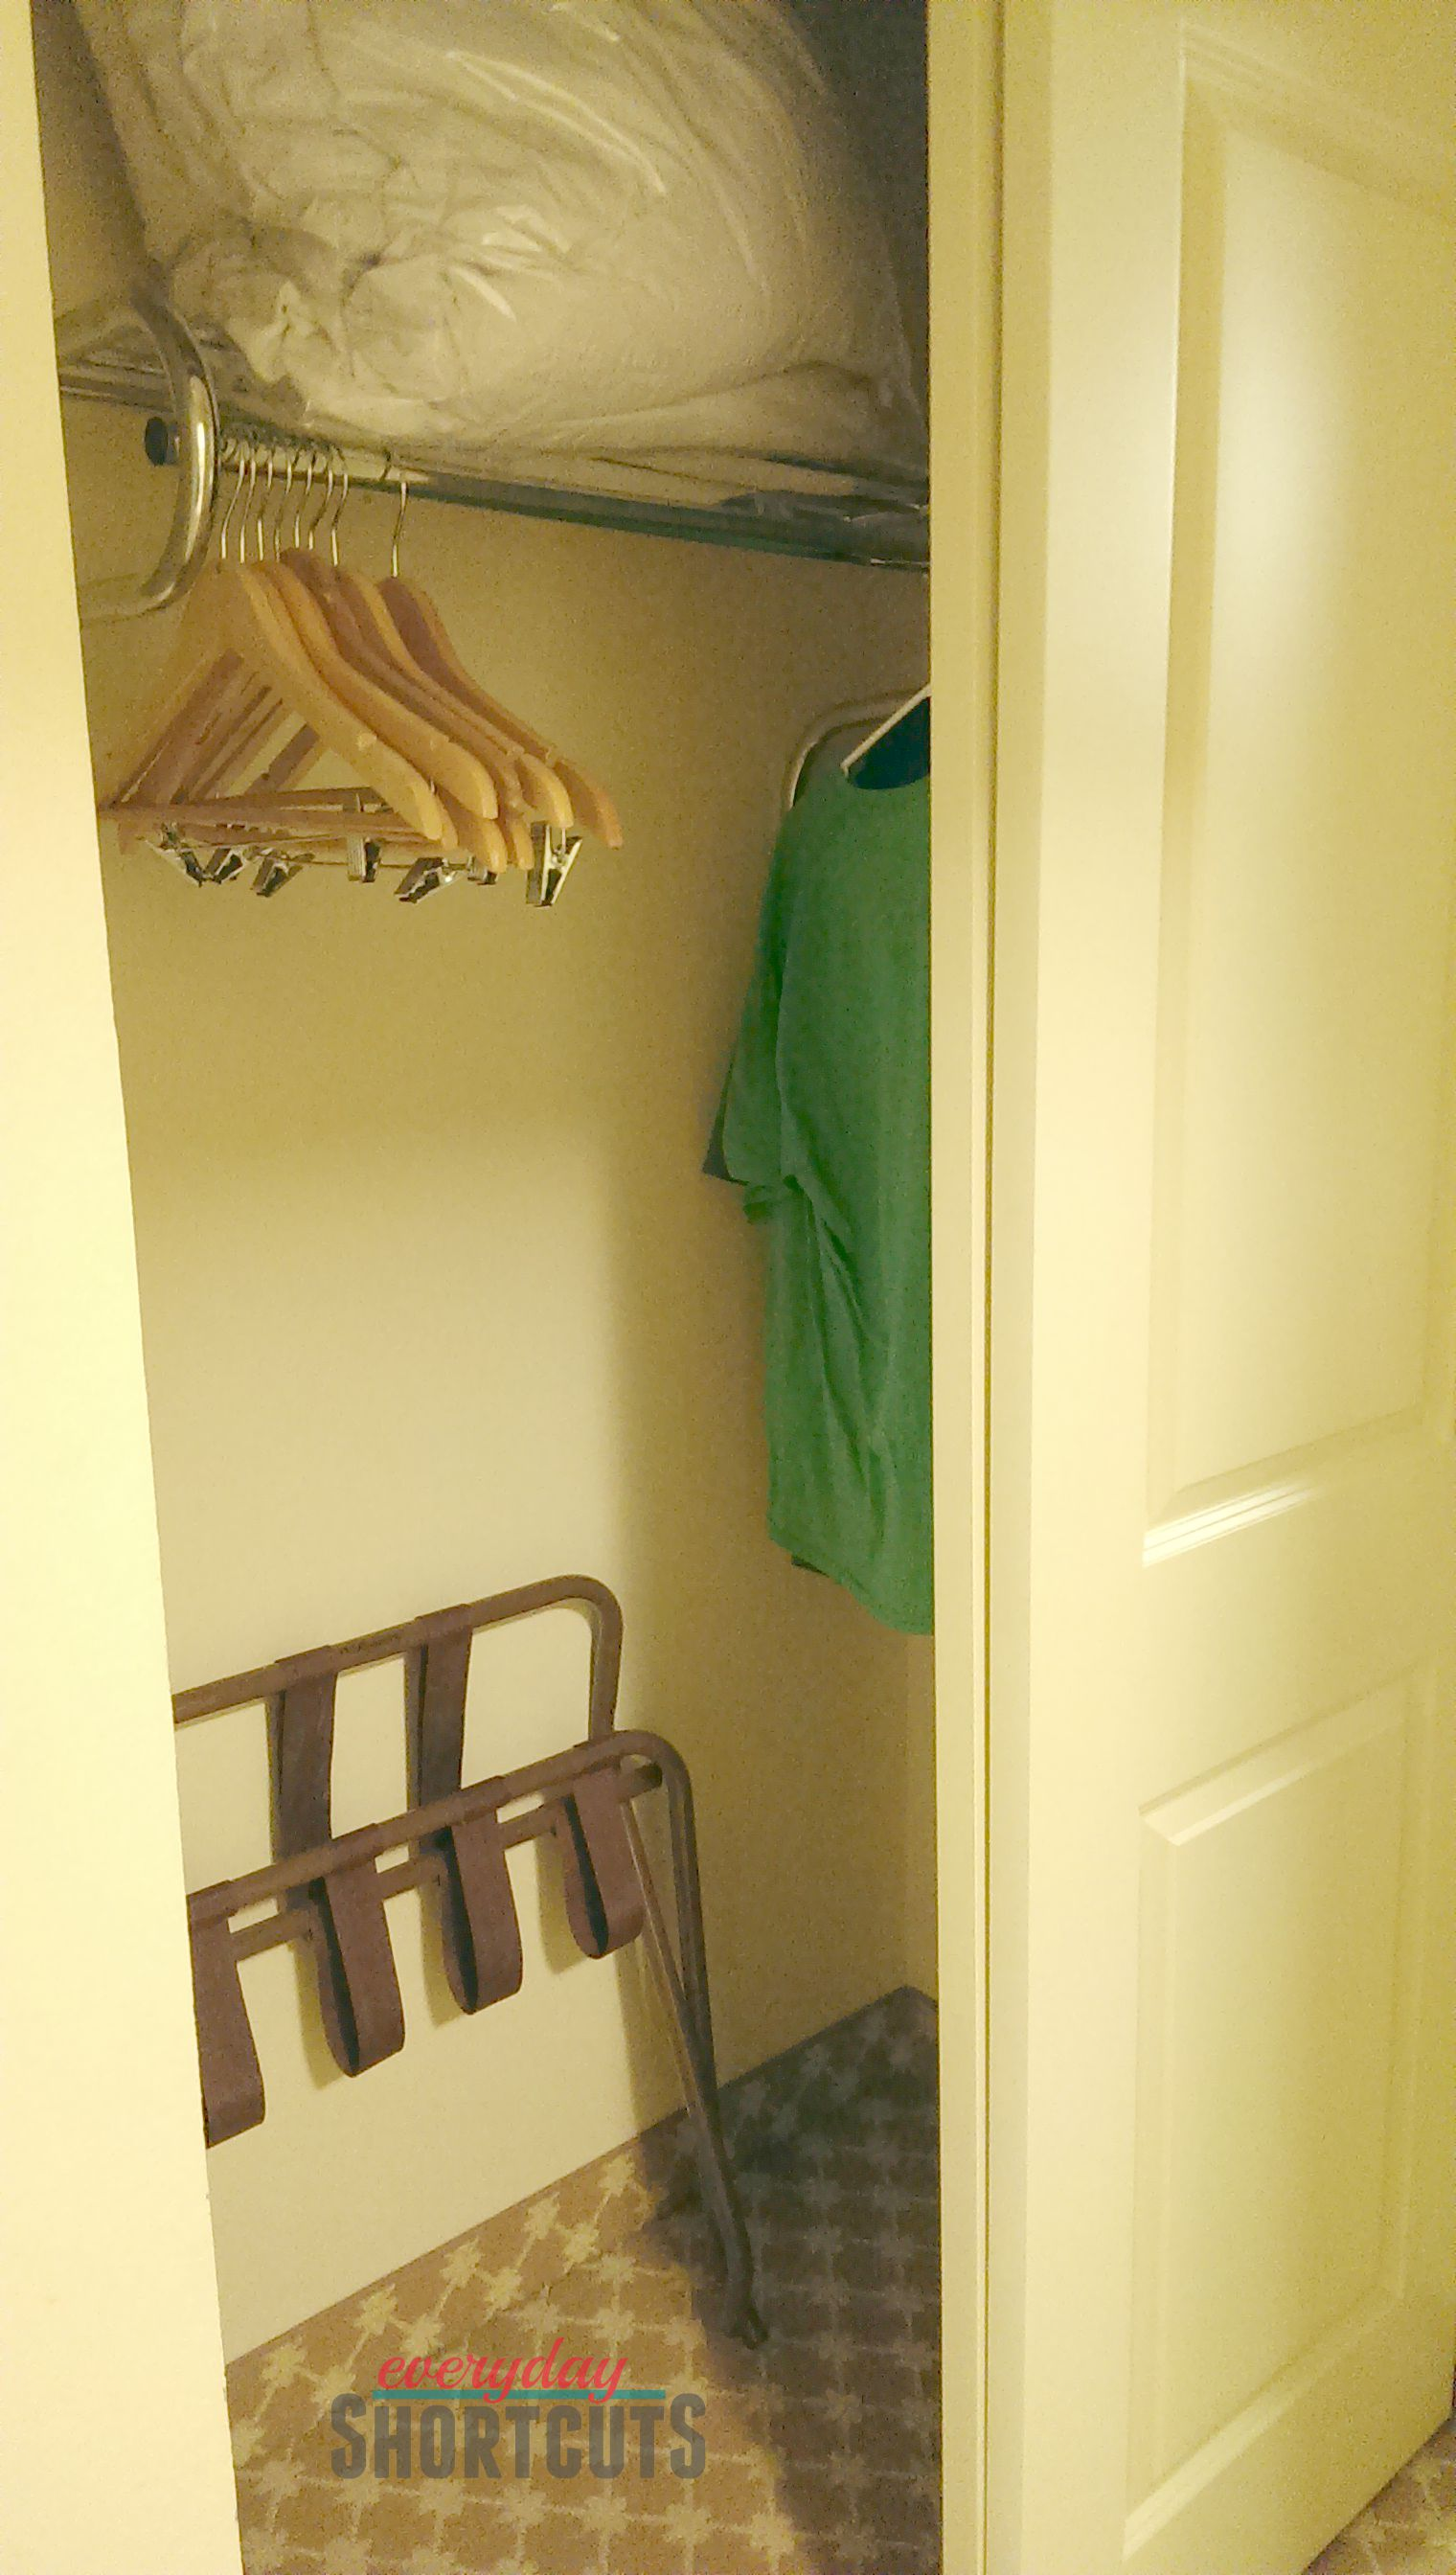 country-inn-suites-closet-space